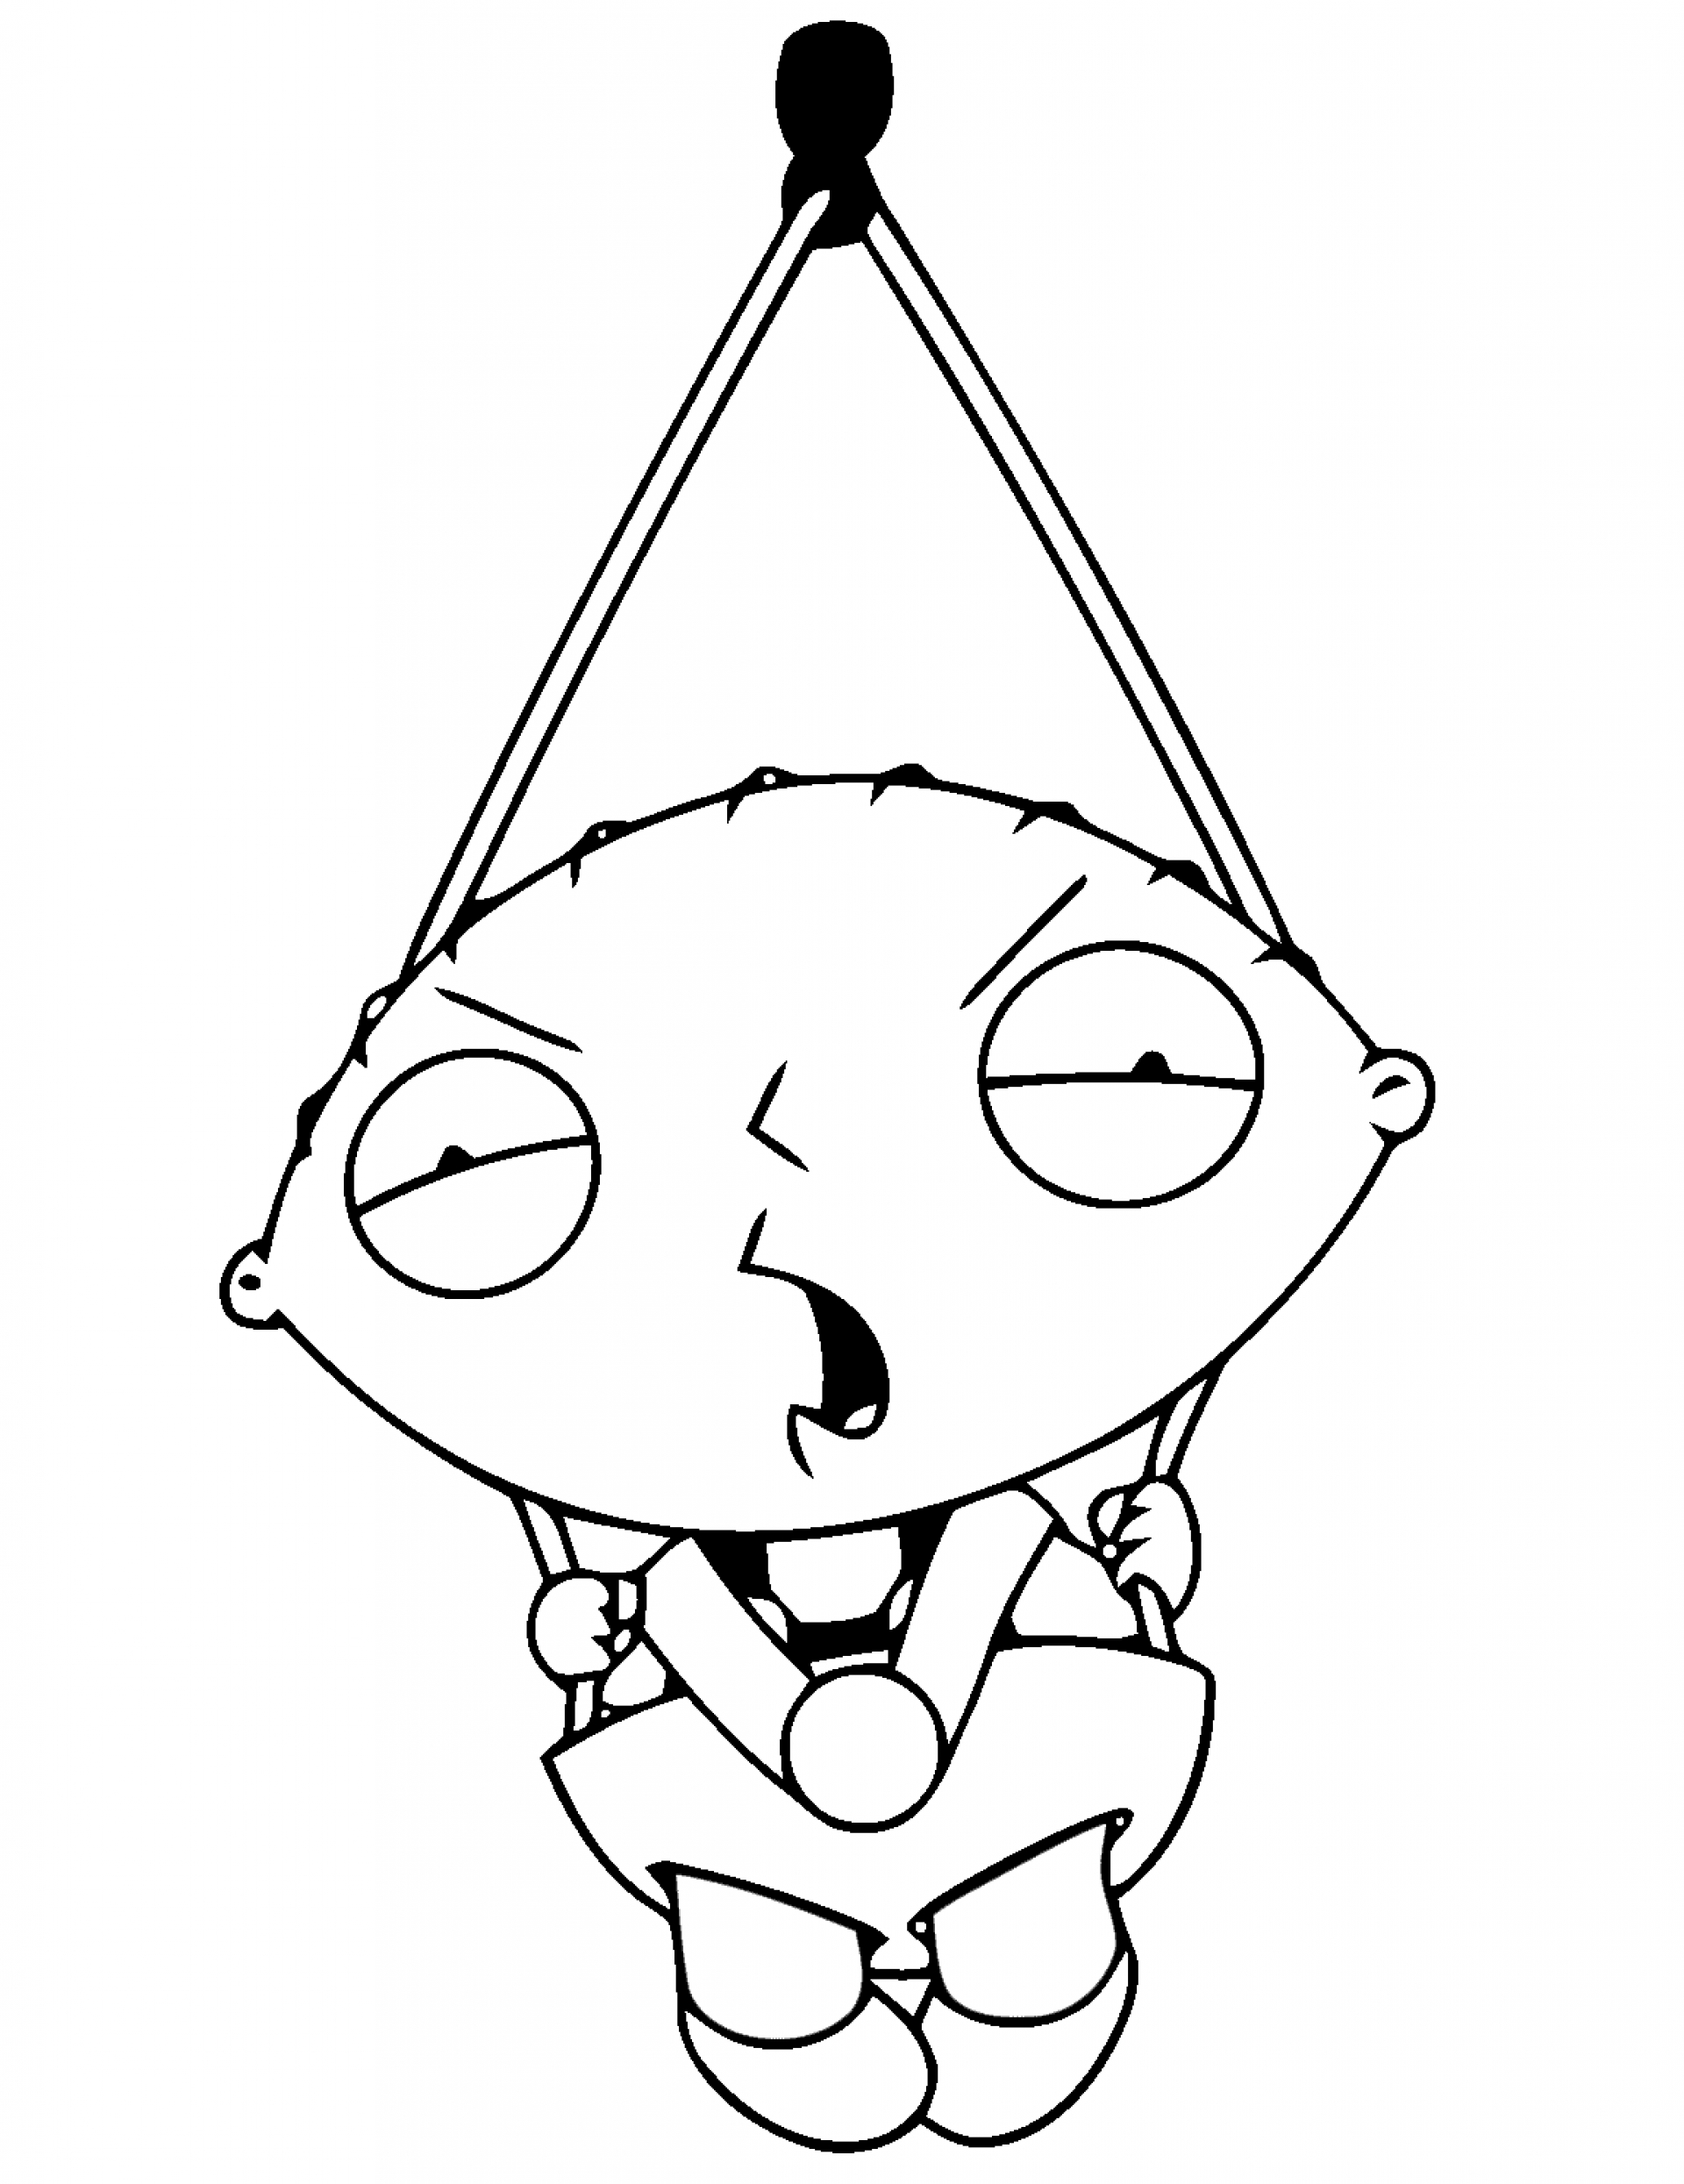 Coloring Pages Cartoon Characters : Cartoon network coloring pages download and print for free